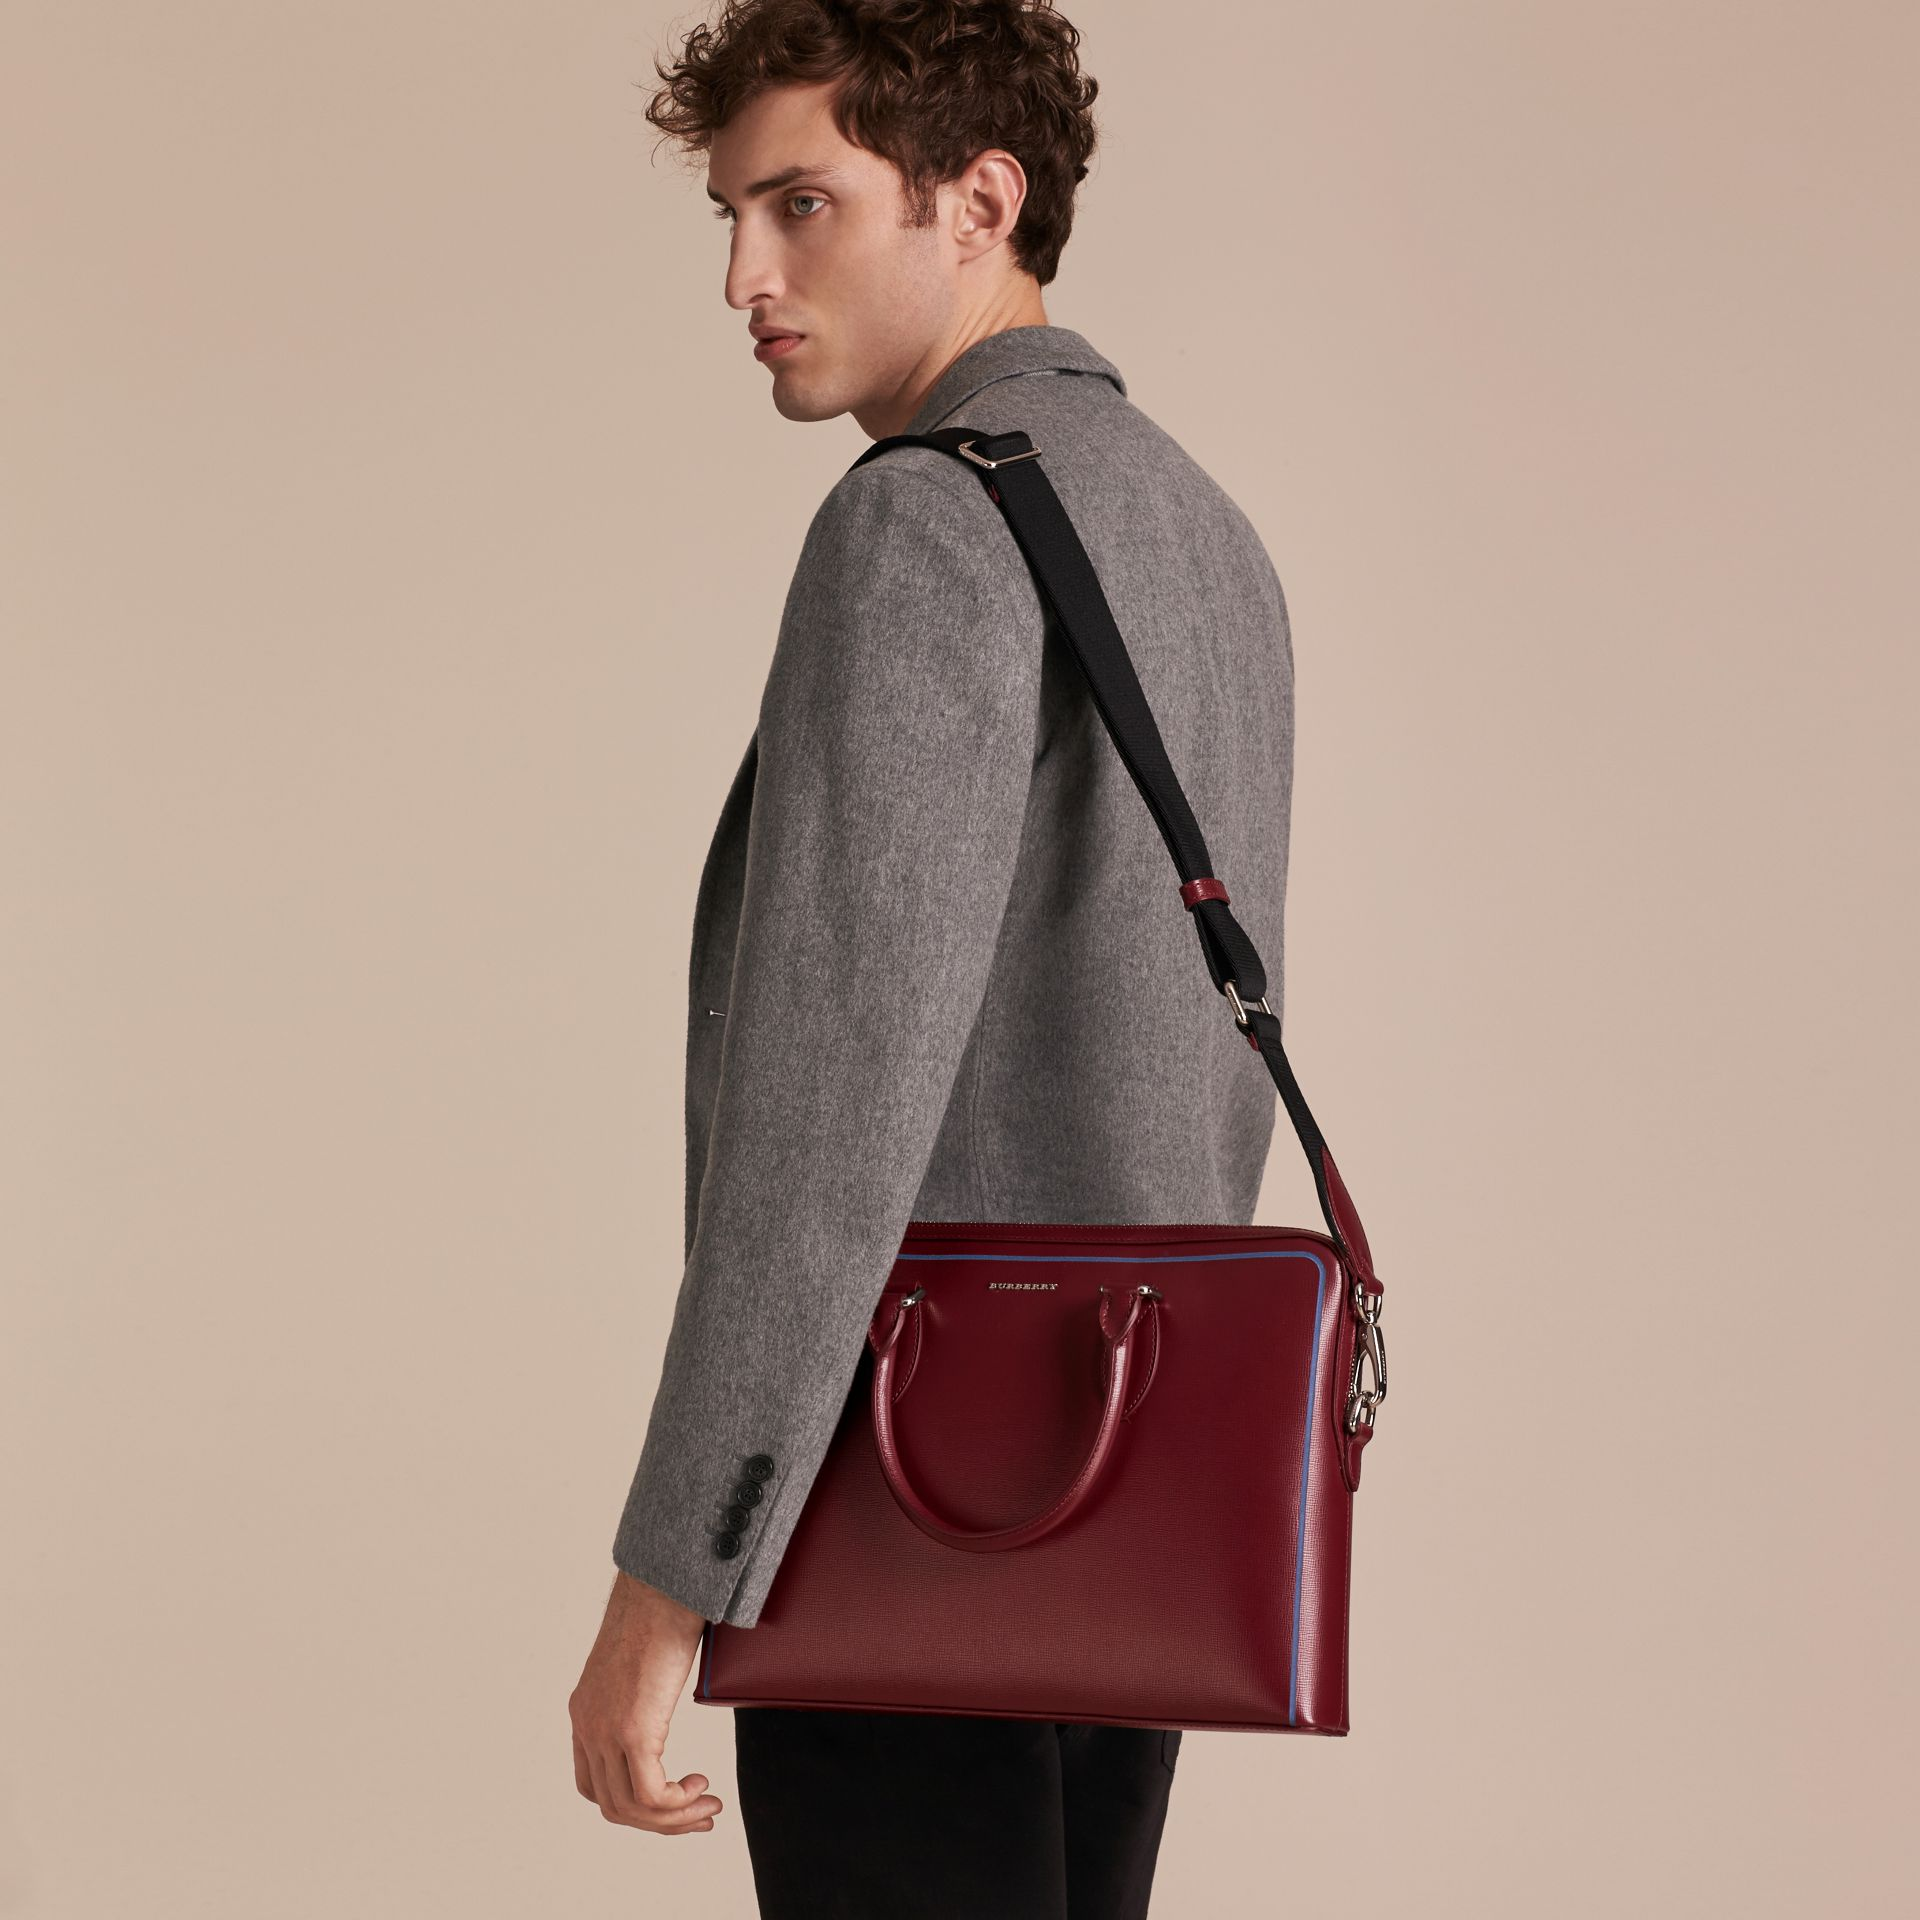 Burgundy red The Slim Barrow Bag in London Leather with Border Detail Burgundy Red - gallery image 4